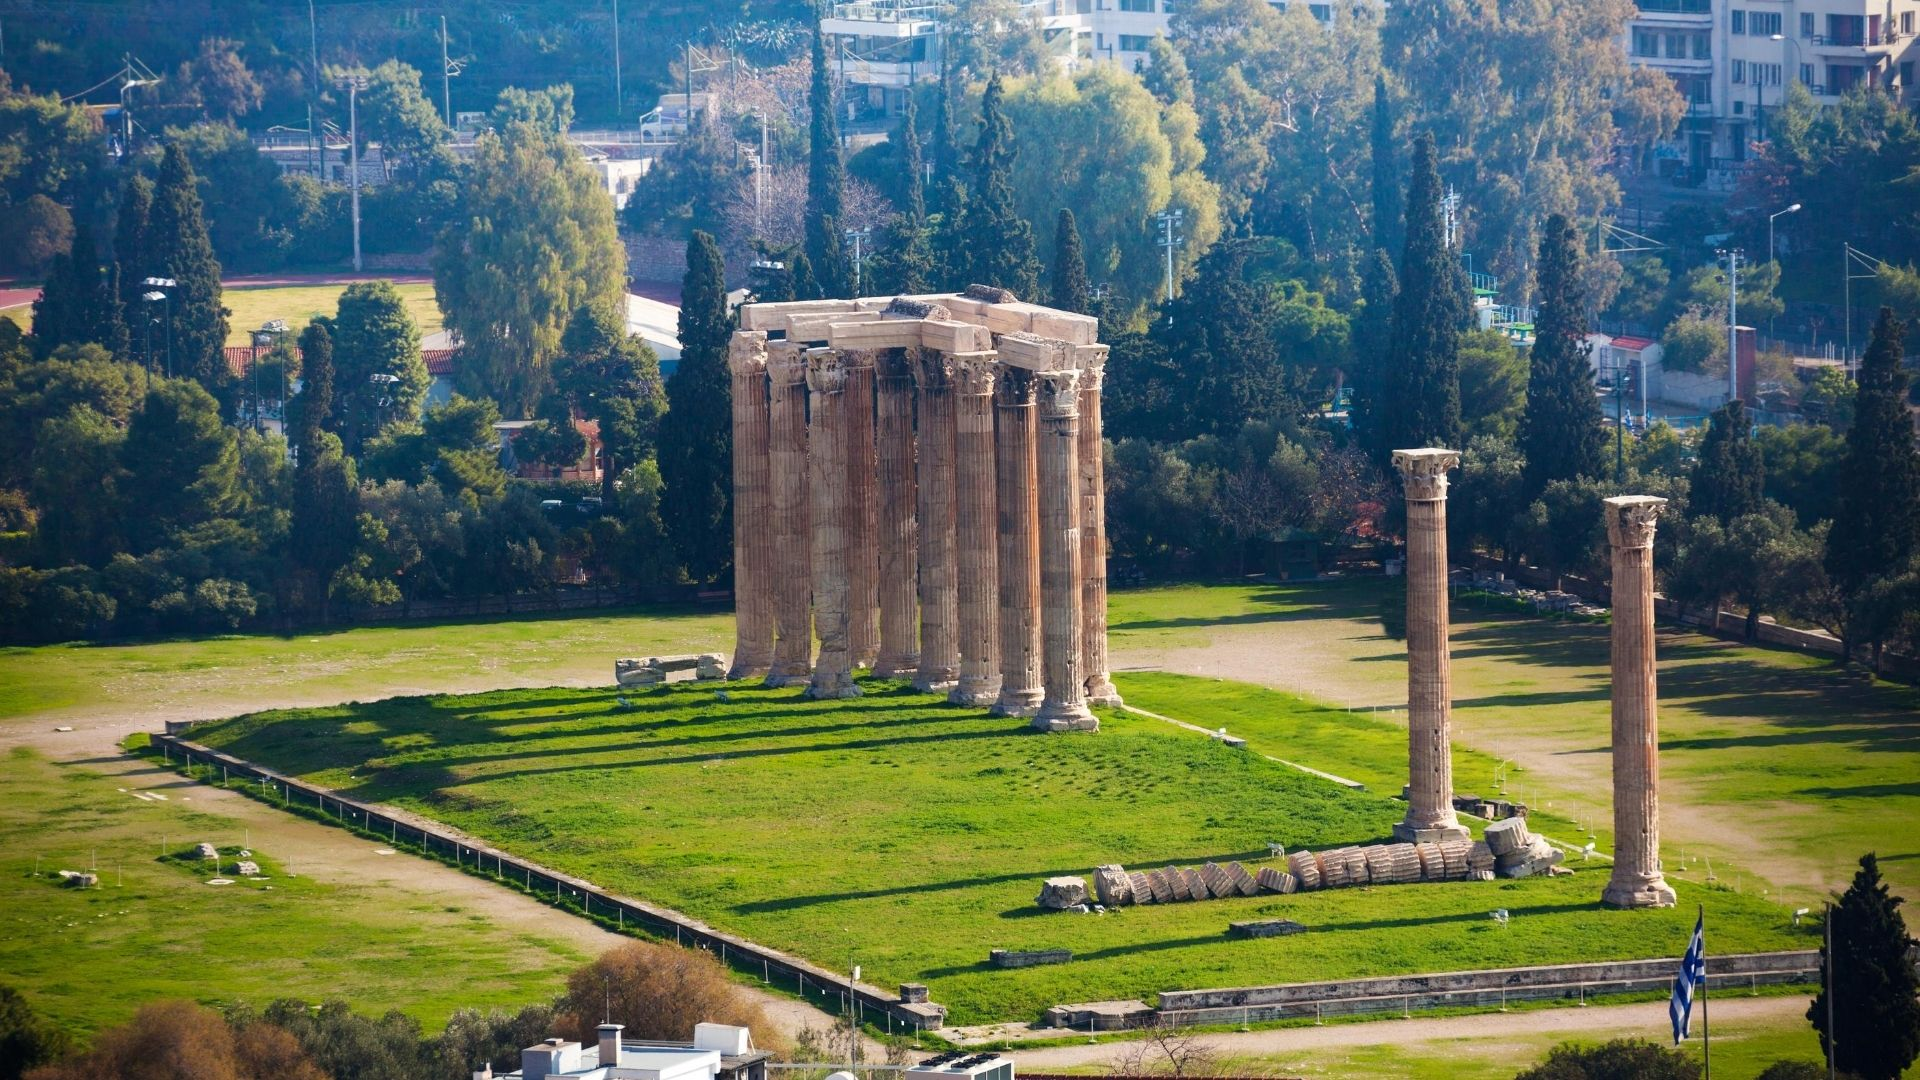 athens historical Temple of Zeus - walking tour grekaddict